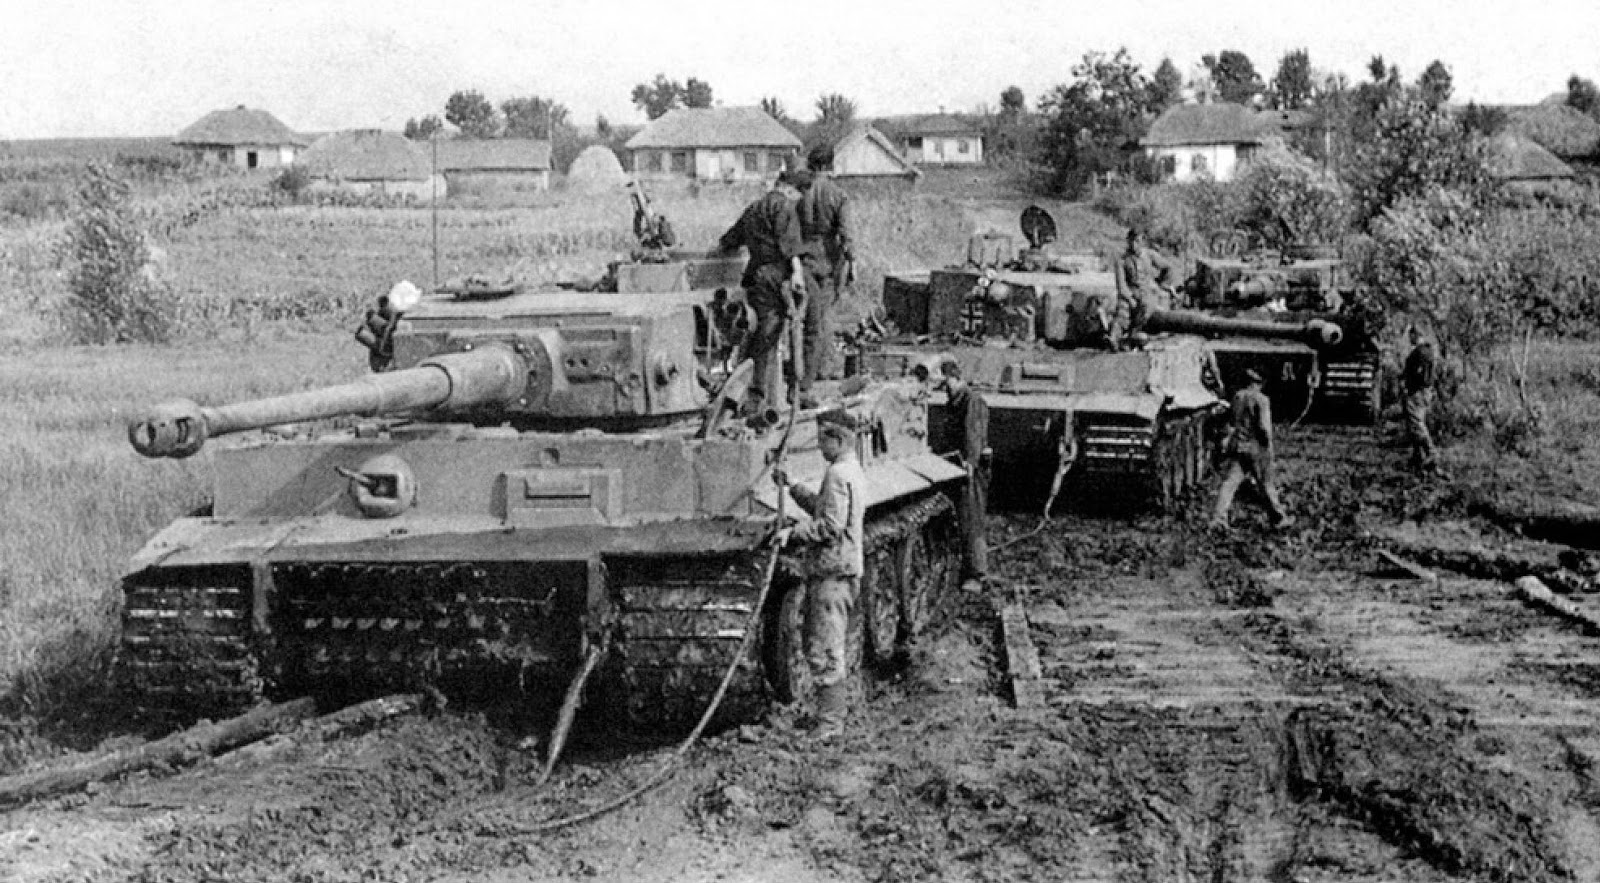 Flooded fields and thick mud was definitely not going to be our friend (Source - historicalsocietyofgermanmilitaryhistory.com)